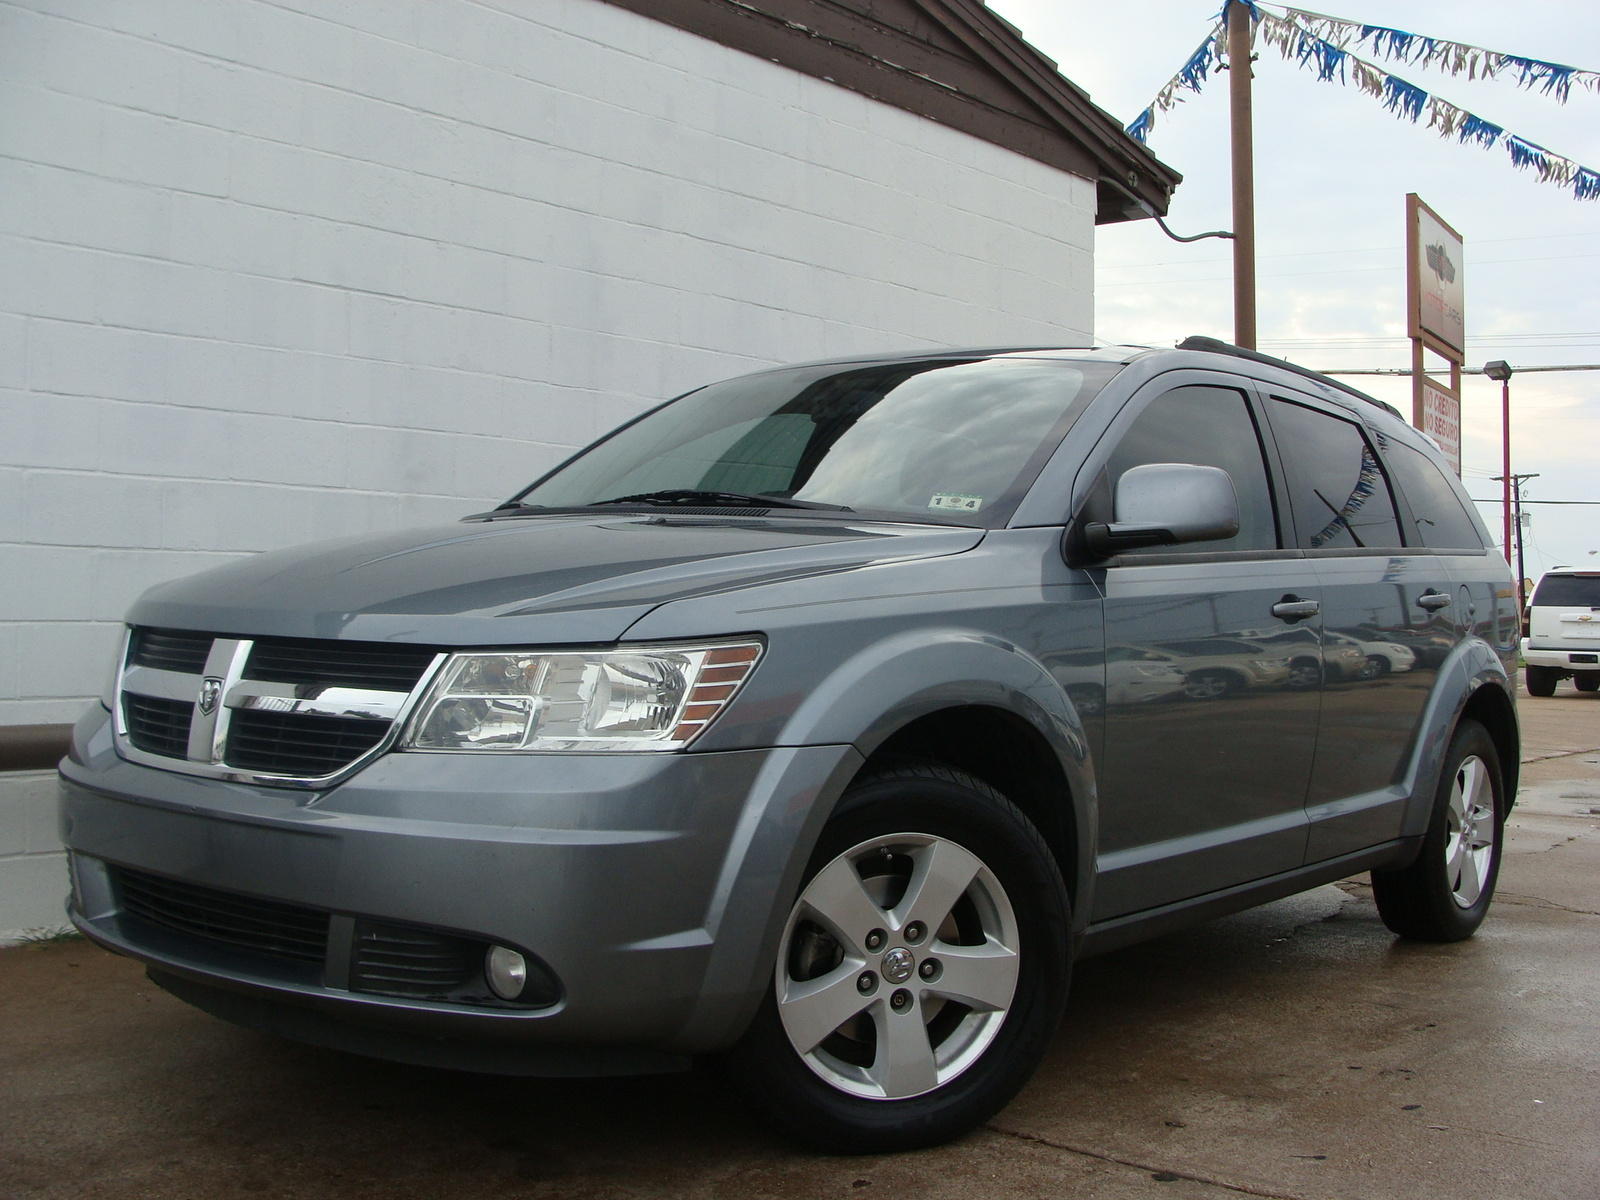 2010 dodge journey pictures cargurus. Black Bedroom Furniture Sets. Home Design Ideas